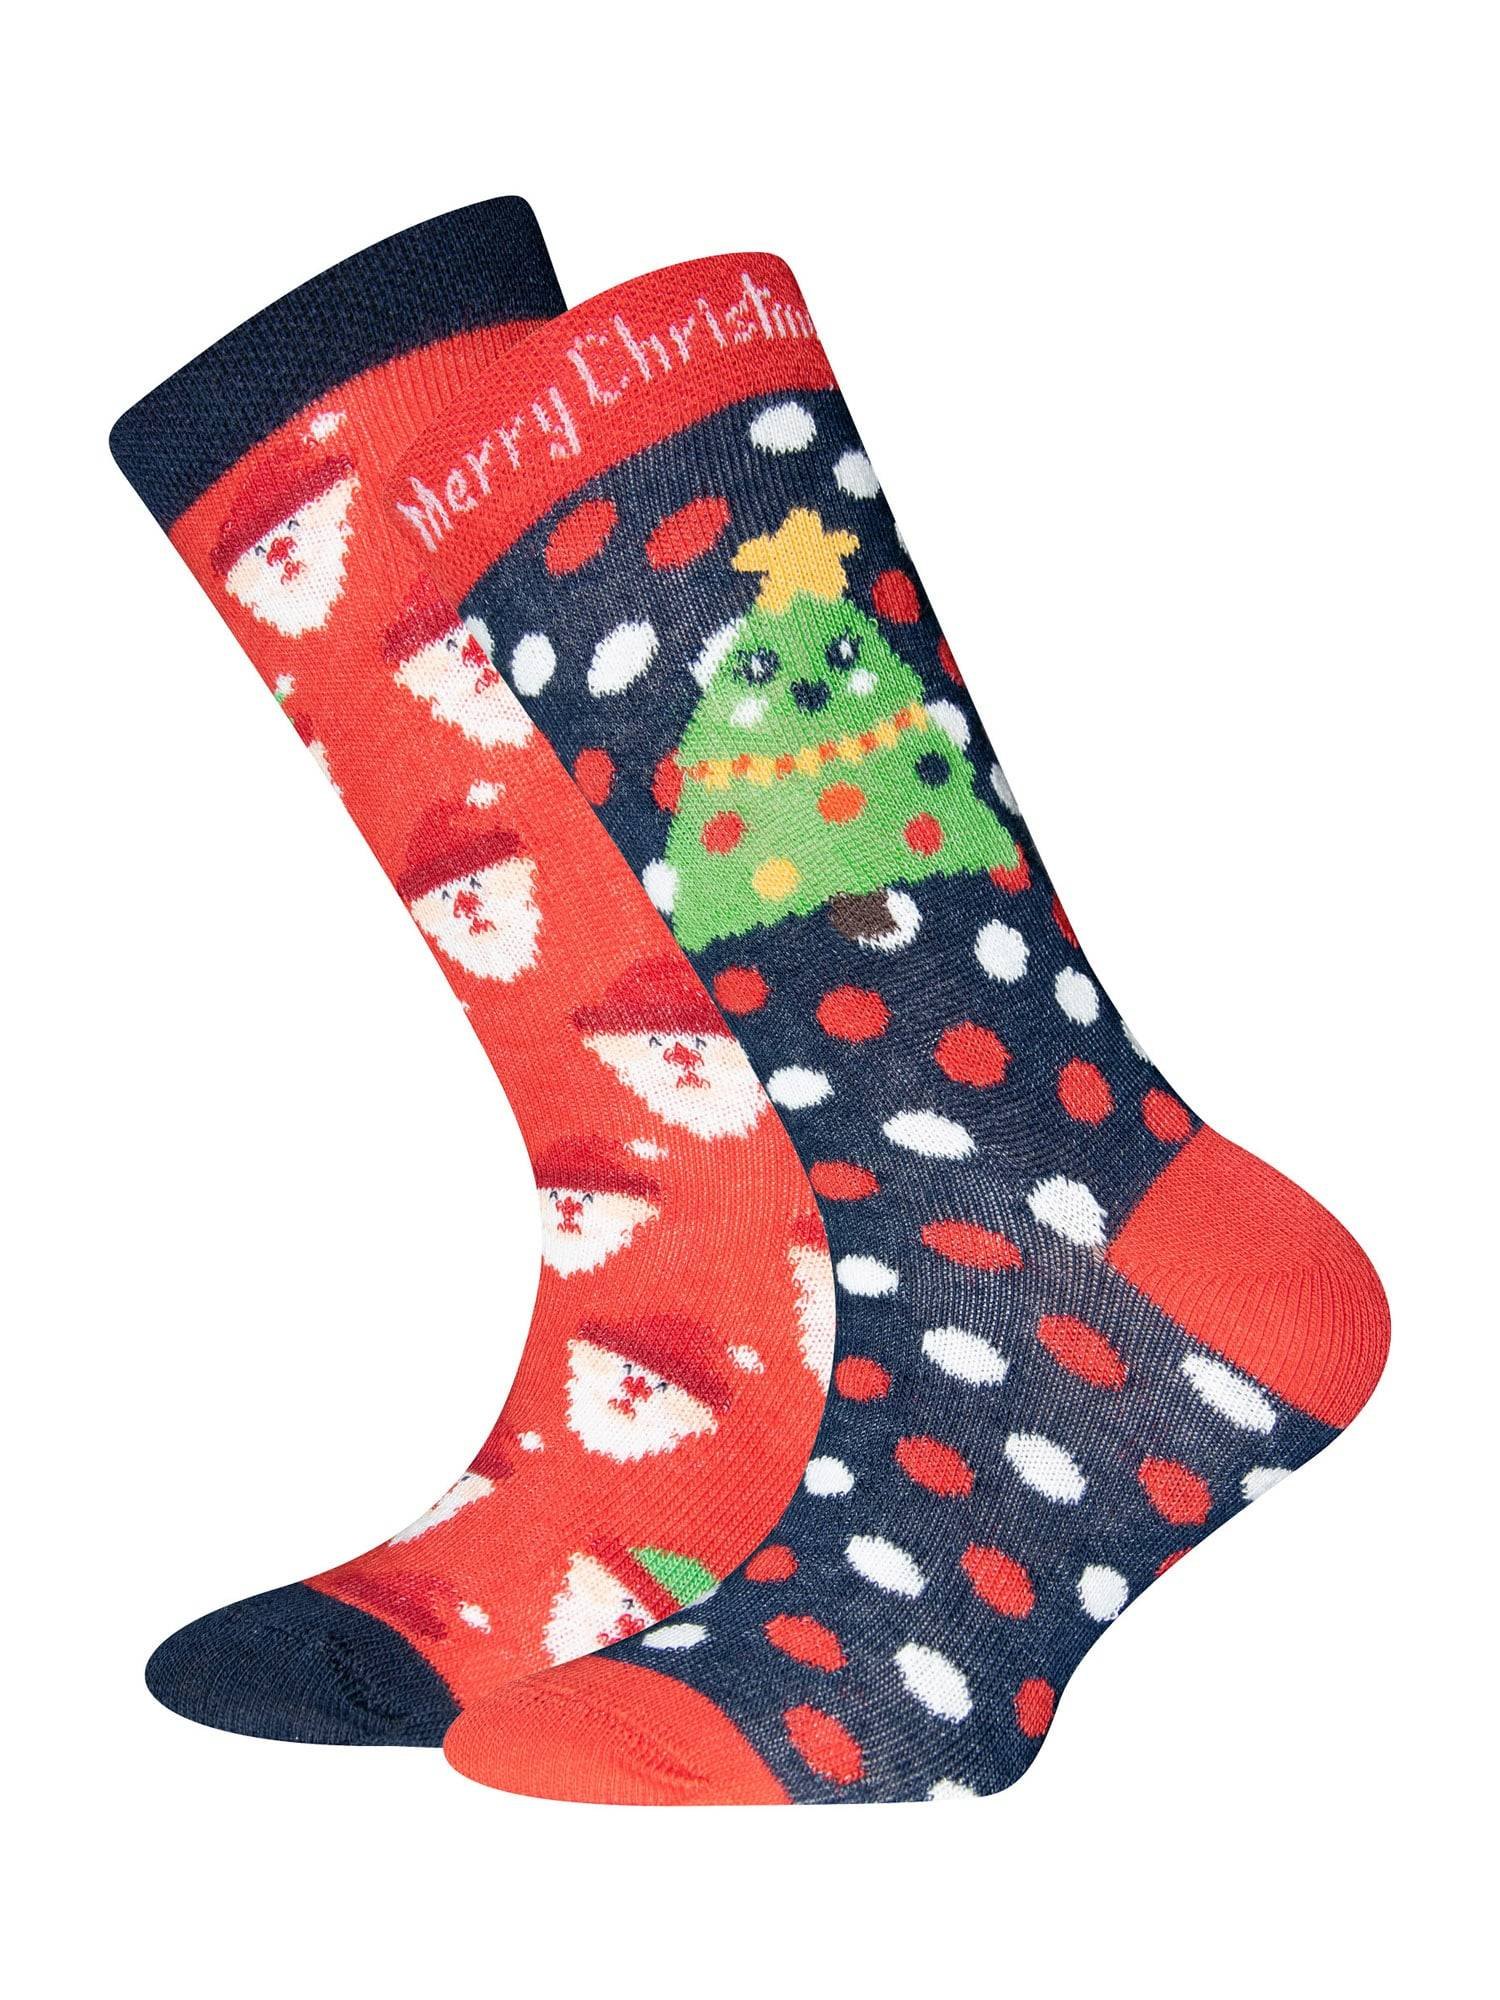 EWERS Chaussettes  - Bleu, Rouge - Taille: 35-38 - boy